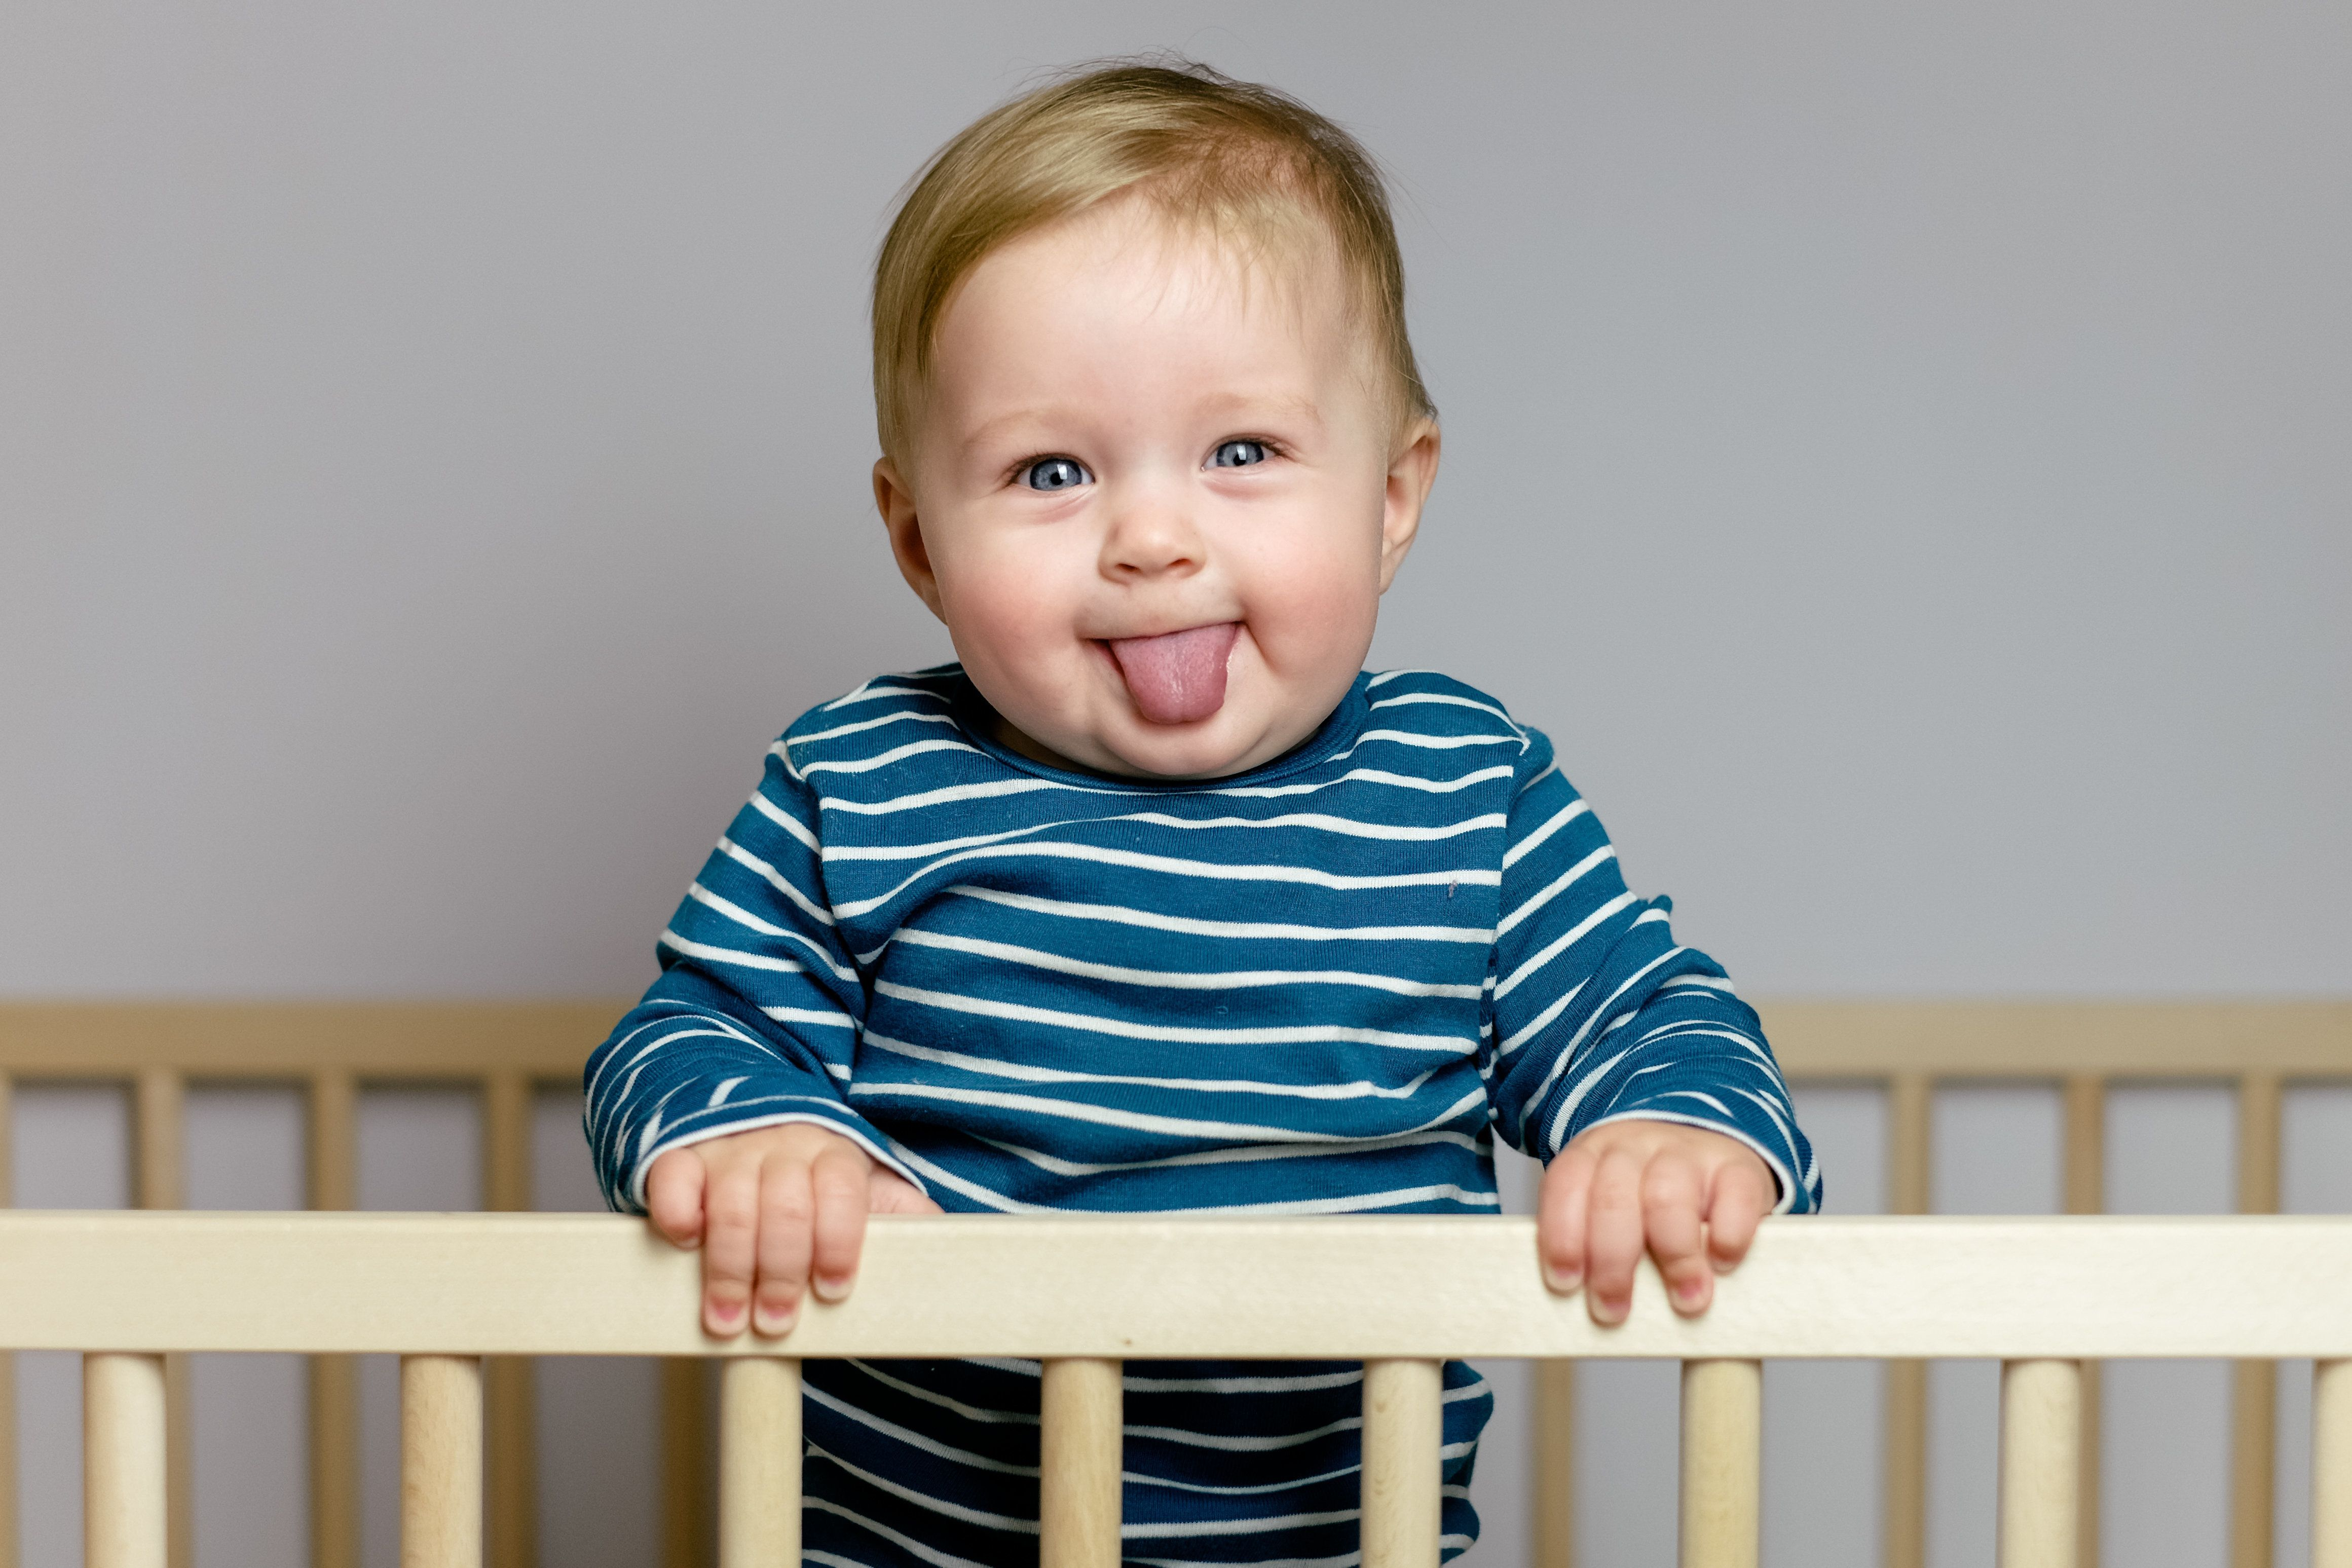 Baby playing in the crib